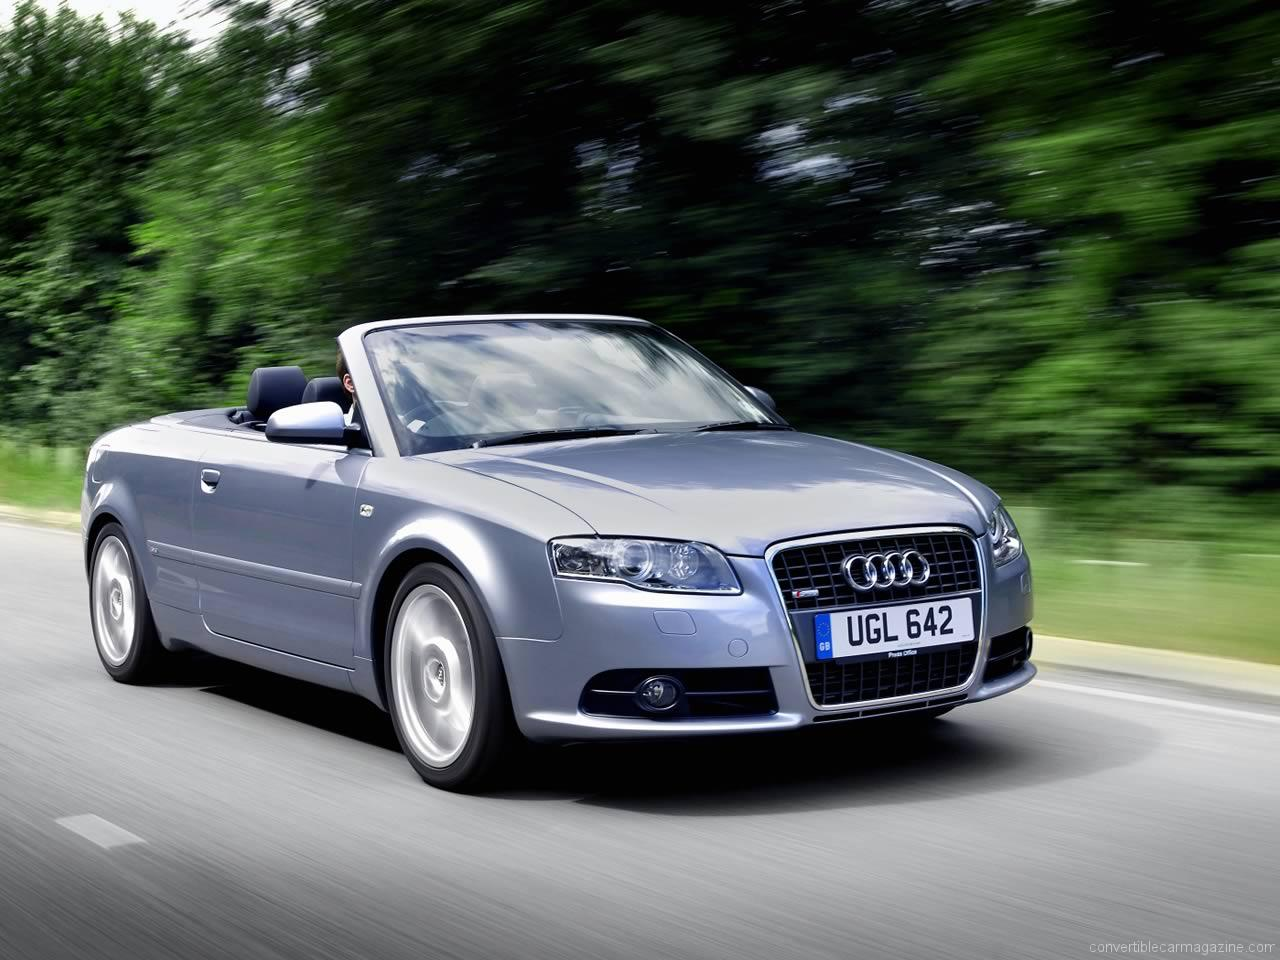 audi cabriolet parts uk on mazda cars uk, skoda cars uk, honda cars uk, bmw cars uk, nissan cars uk, tesla cars uk, jaguar cars uk, mg cars uk, bristol cars uk, eagle cars uk, seat cars uk, morgan cars uk, dacia cars uk, ford cars uk, peugeot cars uk, renault cars uk, caterham cars uk, mclaren cars uk, dodge cars uk, citroen cars uk,